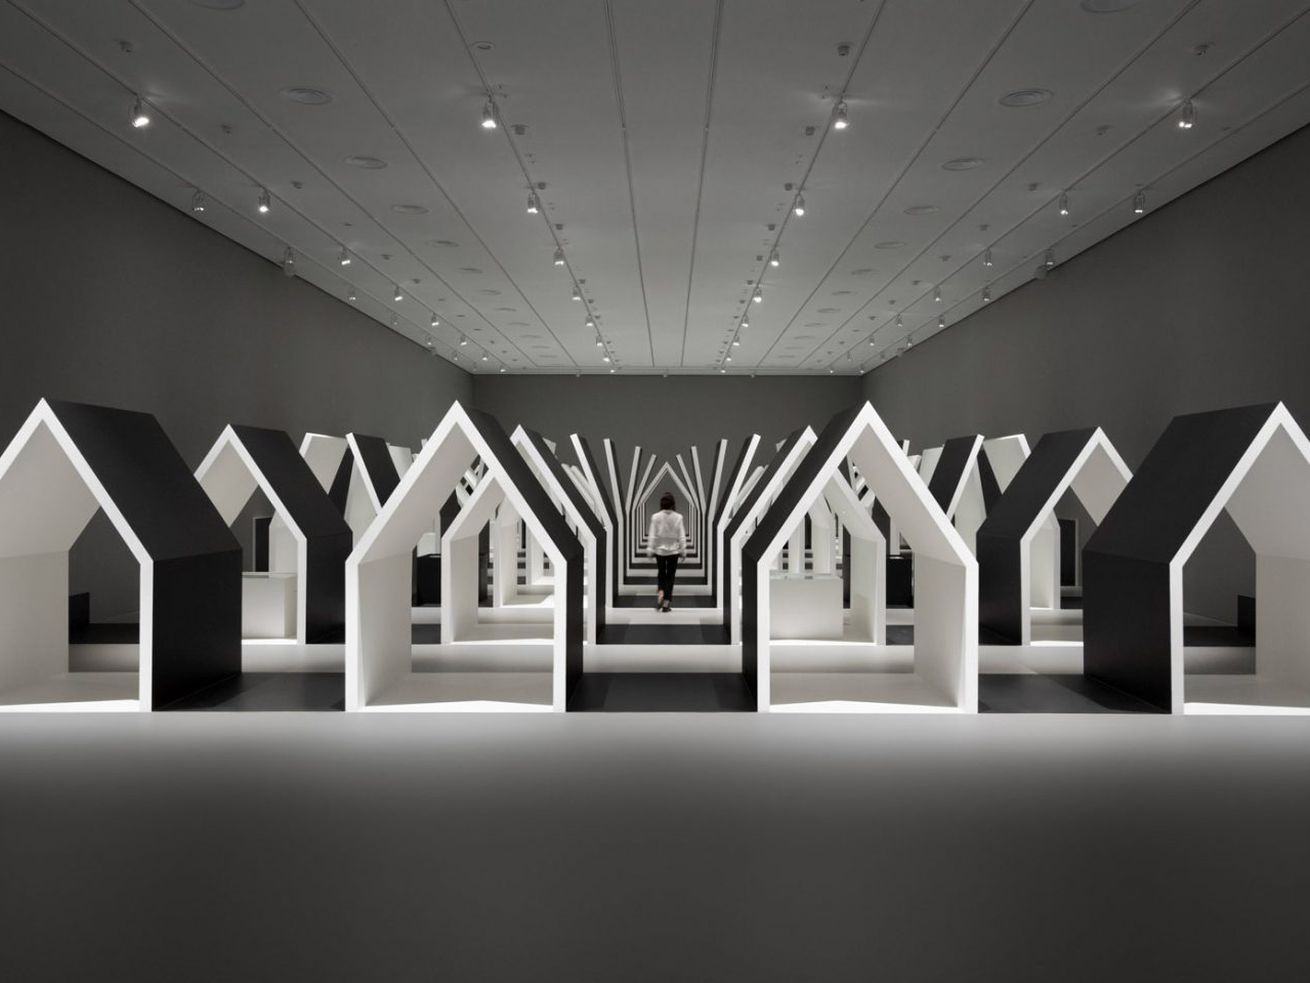 Check out a mind-bending M.C. Escher exhibition designed by Nendo